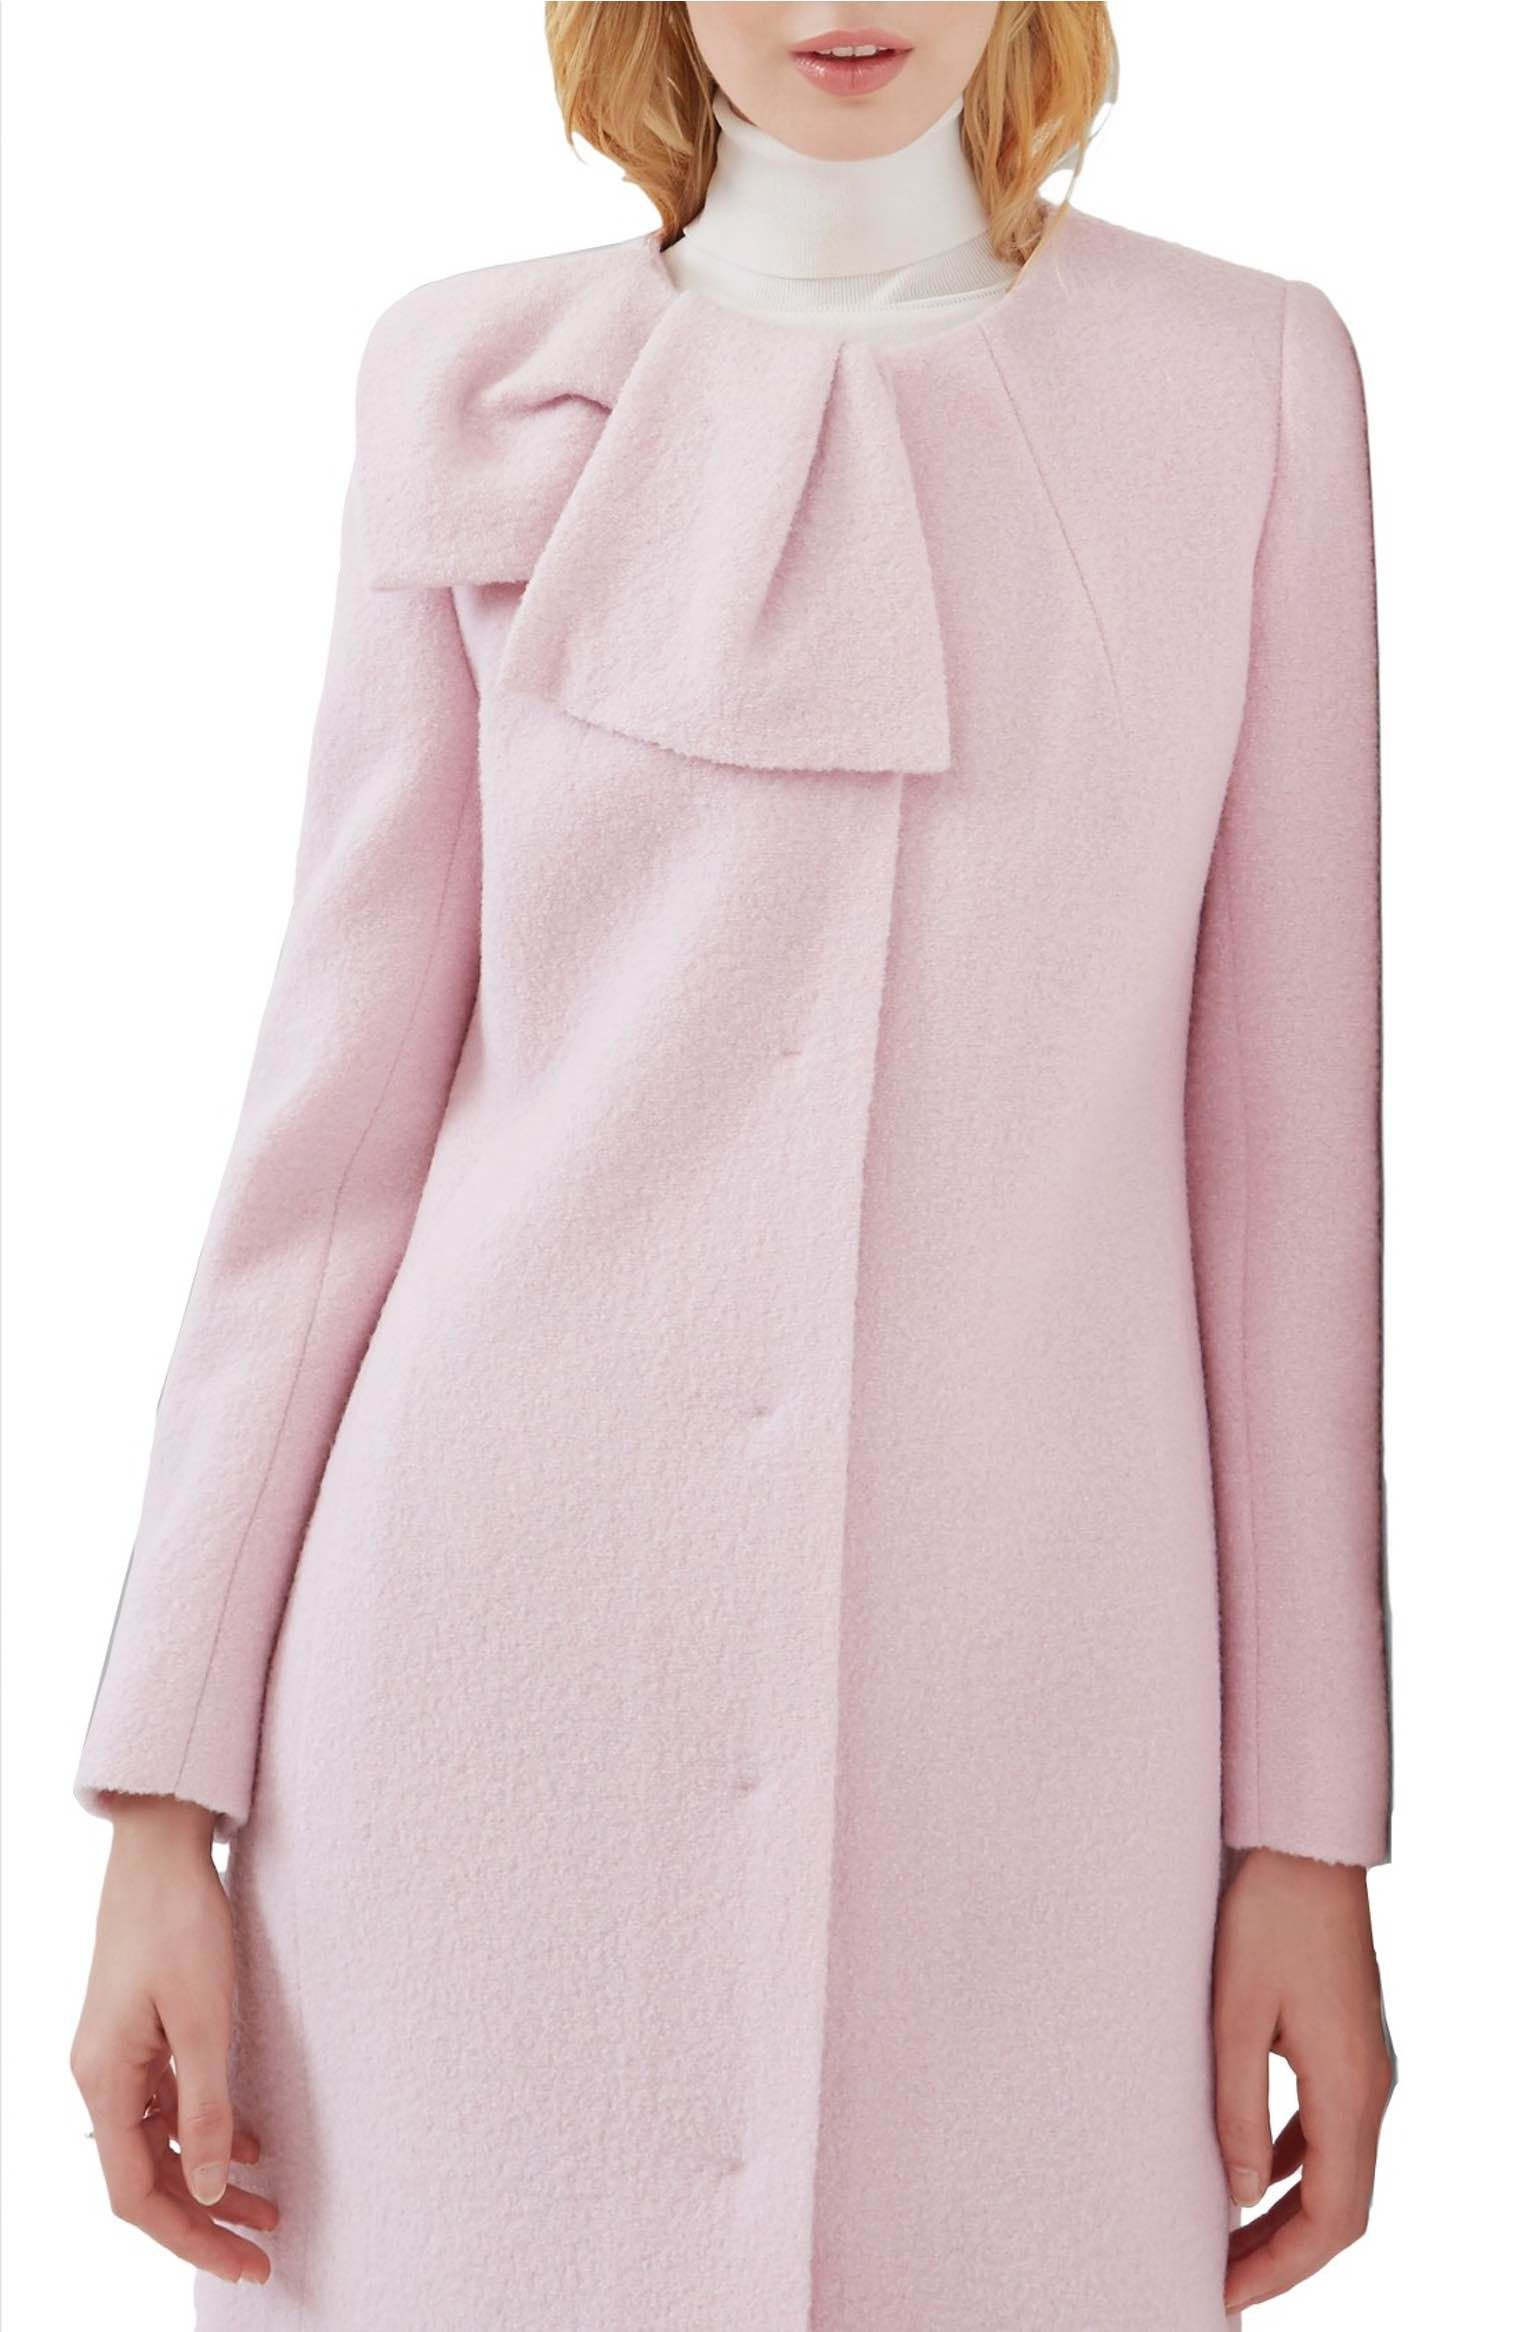 c0629f7d2 Main Image - Ted Baker London Bow Neck Coat Boiled Wool Coat